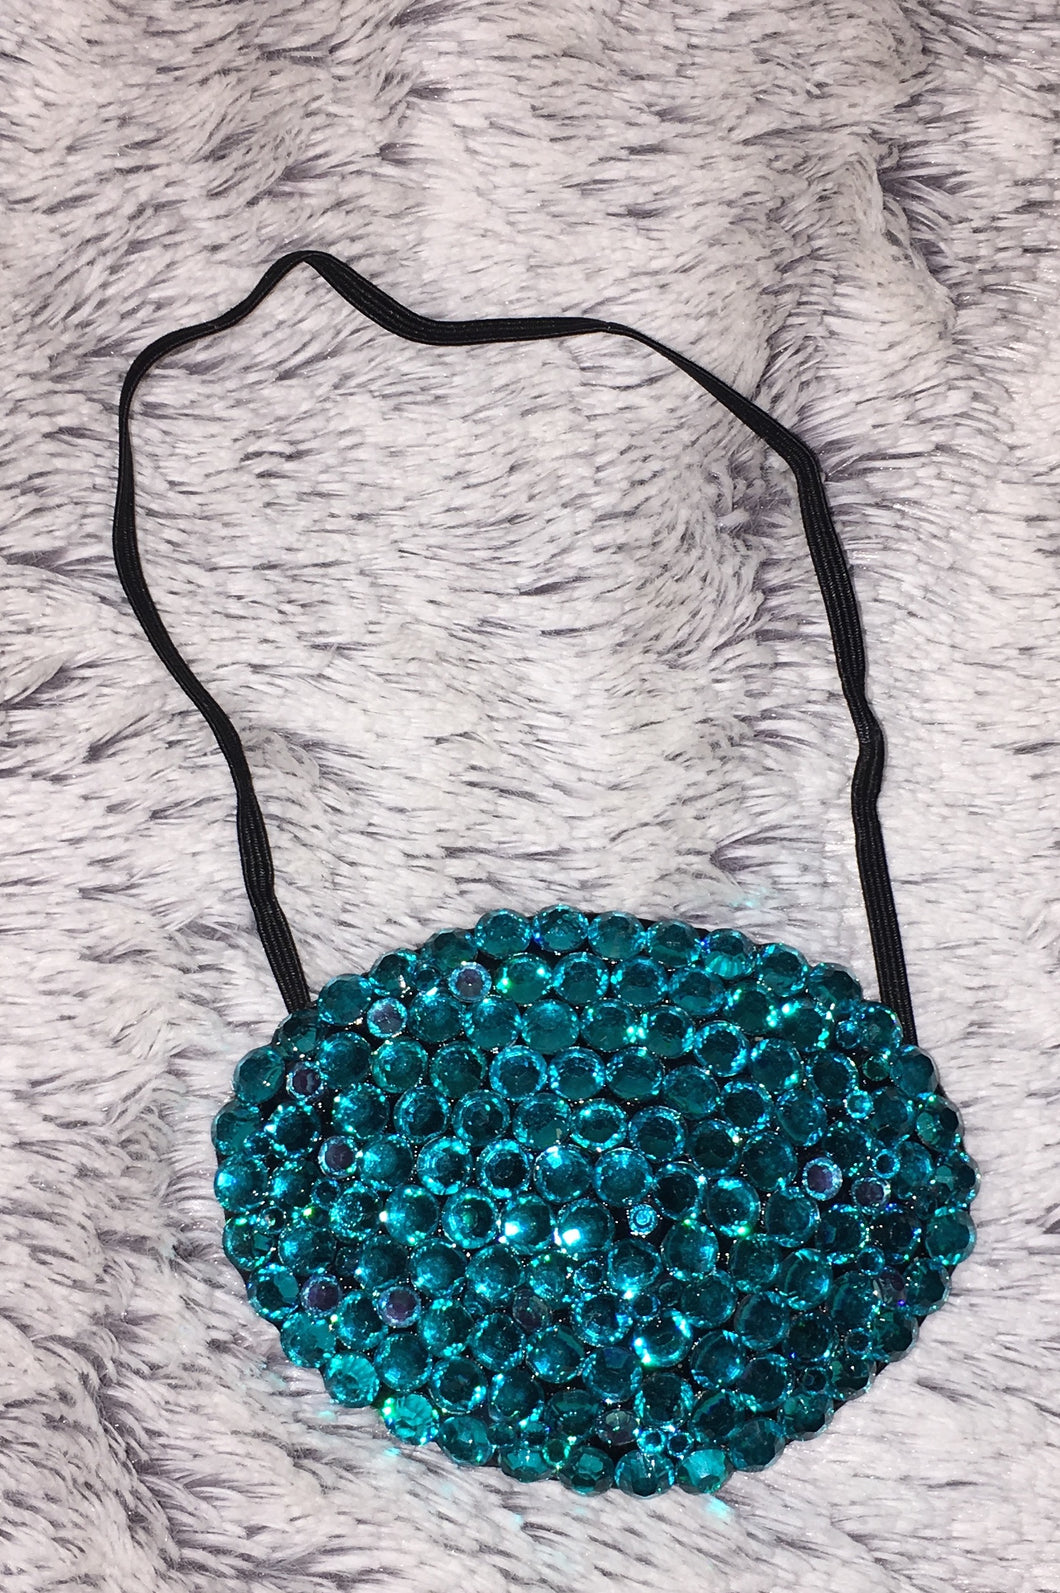 Black Eye Patch Bedazzled In Blue Zircon Crystal